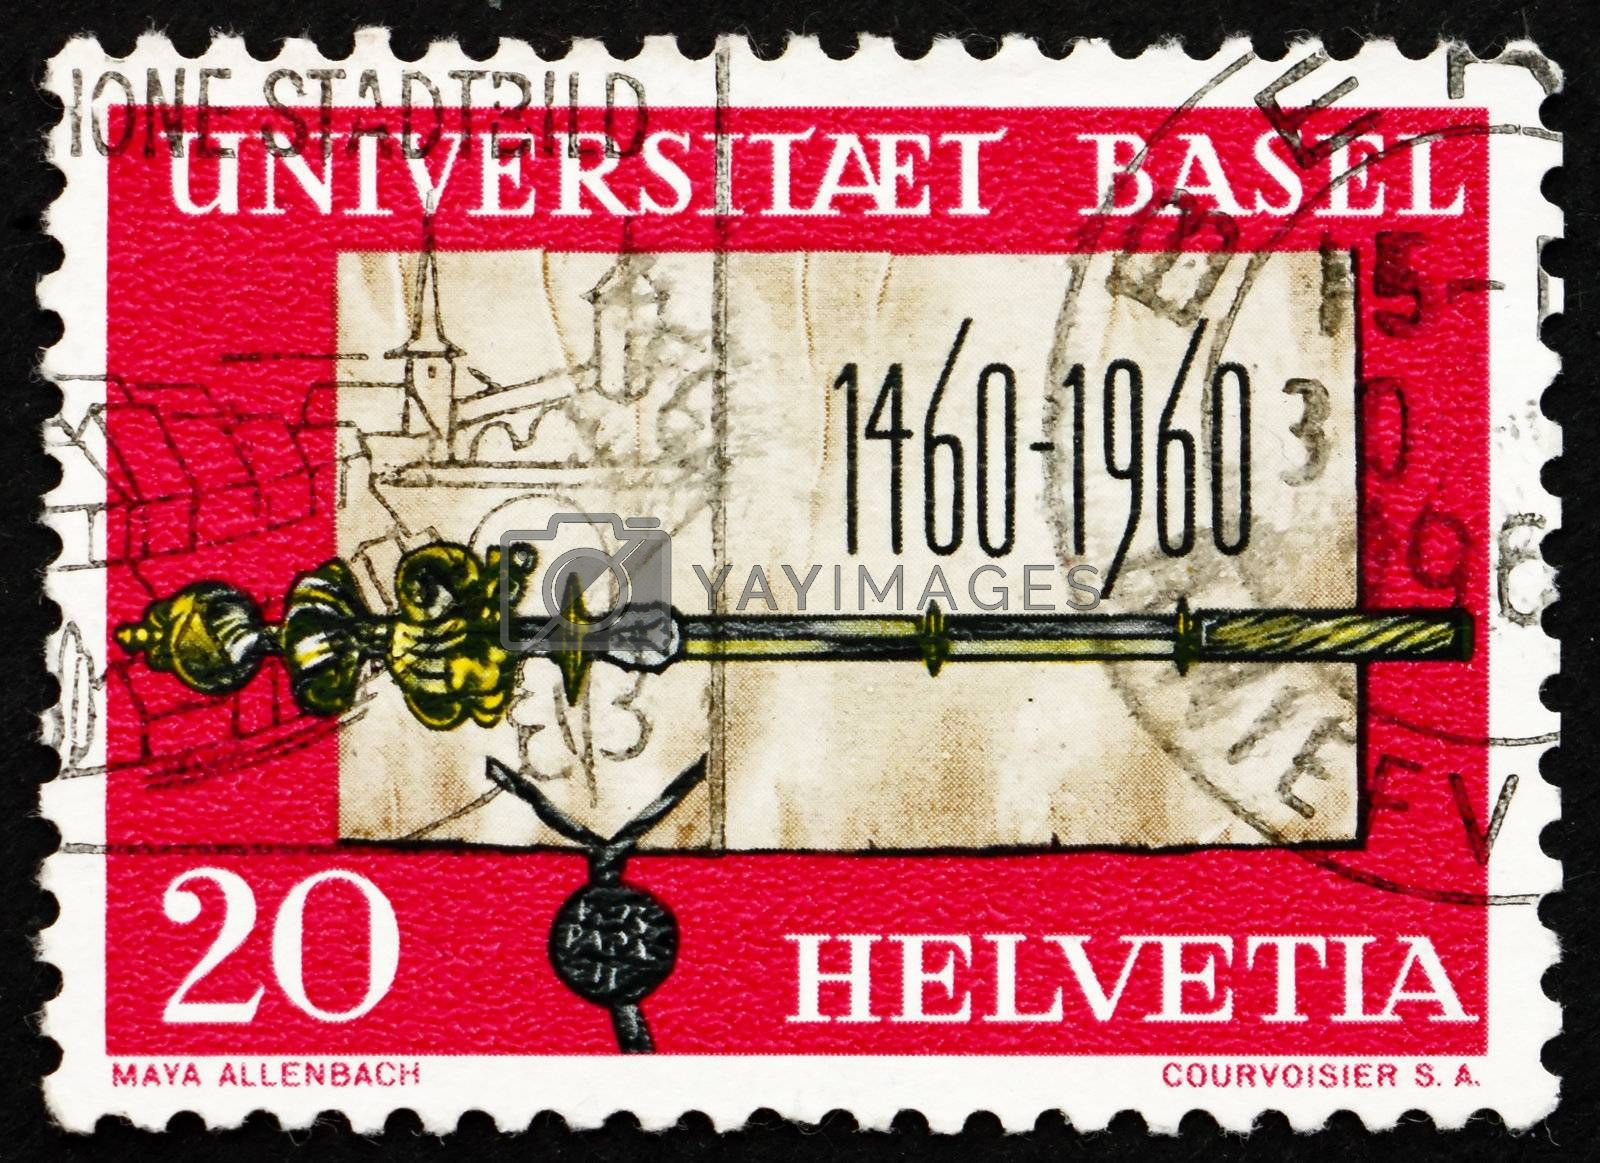 SWITZERLAND - CIRCA 1960: a stamp printed in the Switzerland shows Founding Charter and Scepter of University of Basel, 500th Anniversary, circa 1960